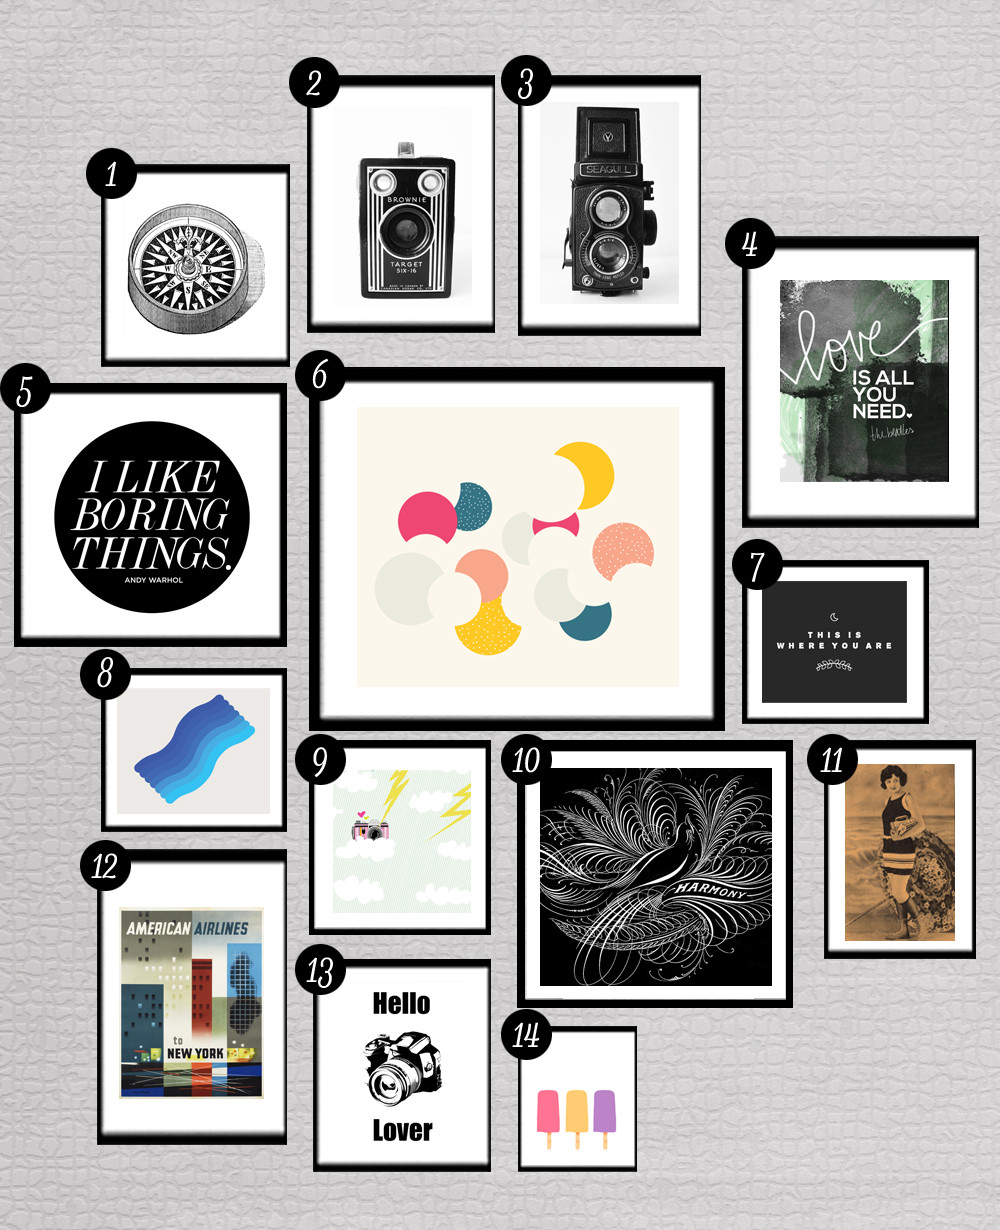 Best ideas about Printable Wall Art . Save or Pin 28 More Free Prints for Your Gallery Walls • Little Gold Pixel Now.